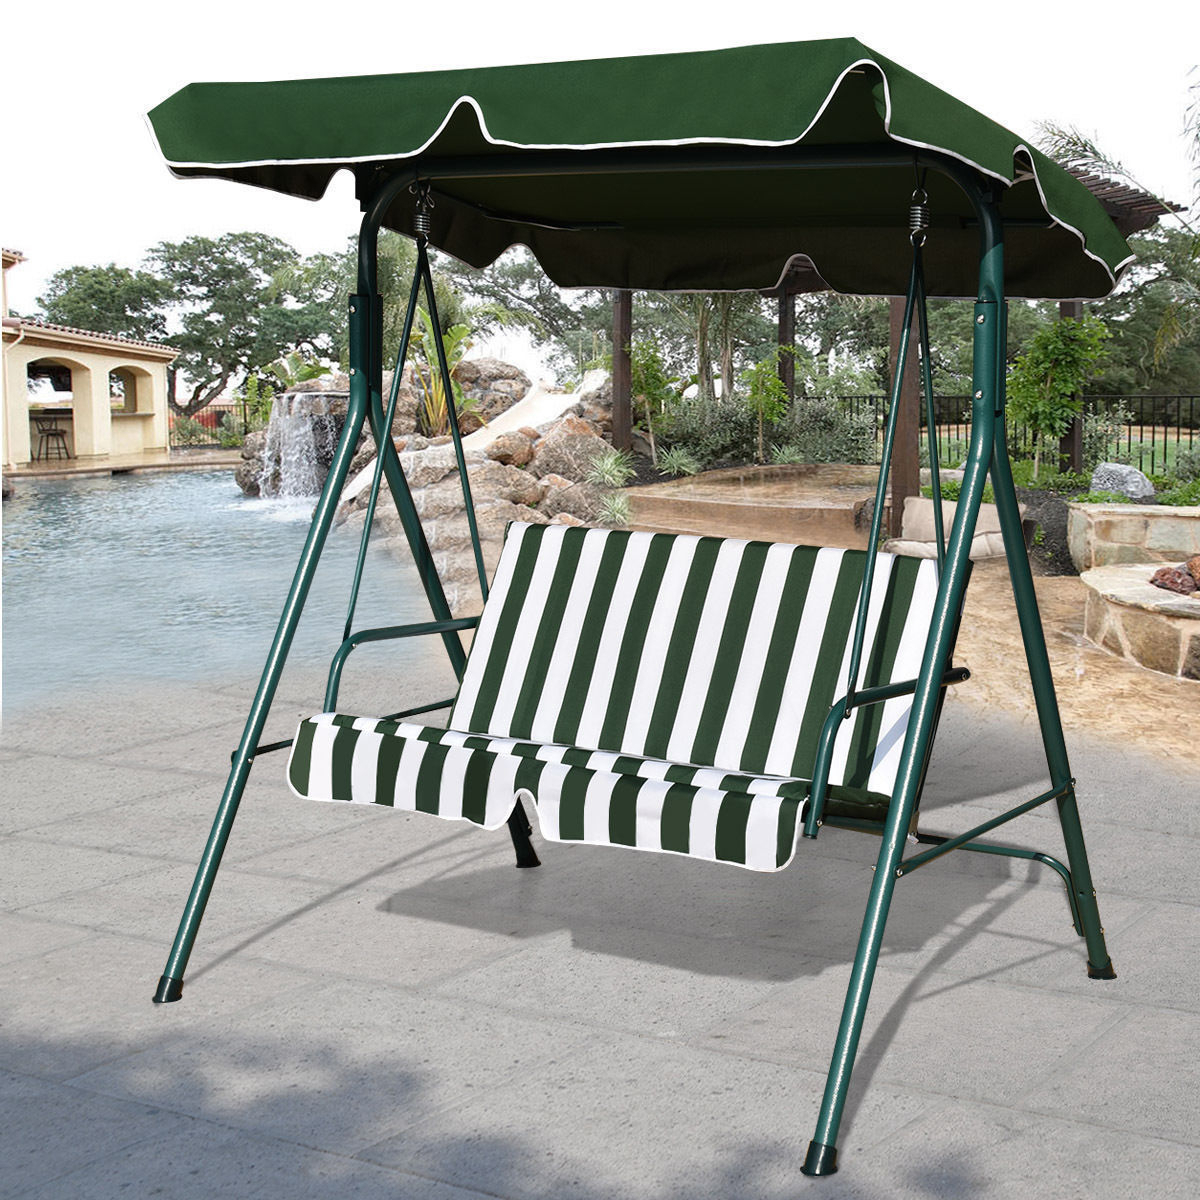 Outdoor Patio Canopy Swing Cushioned Chair Iron 2 Person Yard Furniture Green Intended For 2 Person Antique Black Iron Outdoor Swings (View 4 of 25)